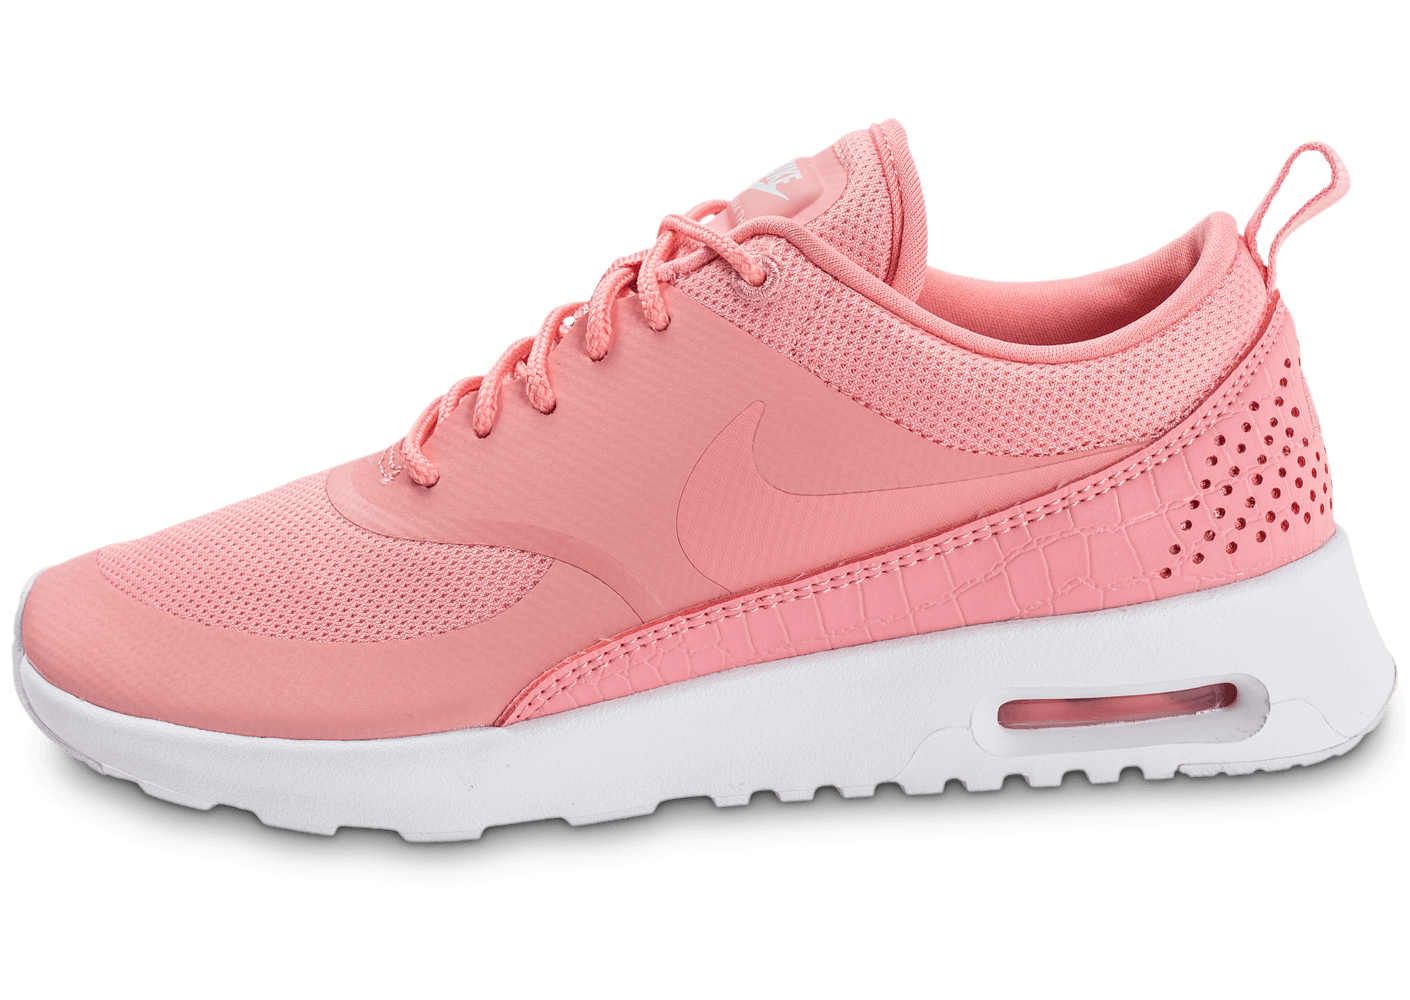 nike air max thea w rose chaussures femme chausport. Black Bedroom Furniture Sets. Home Design Ideas